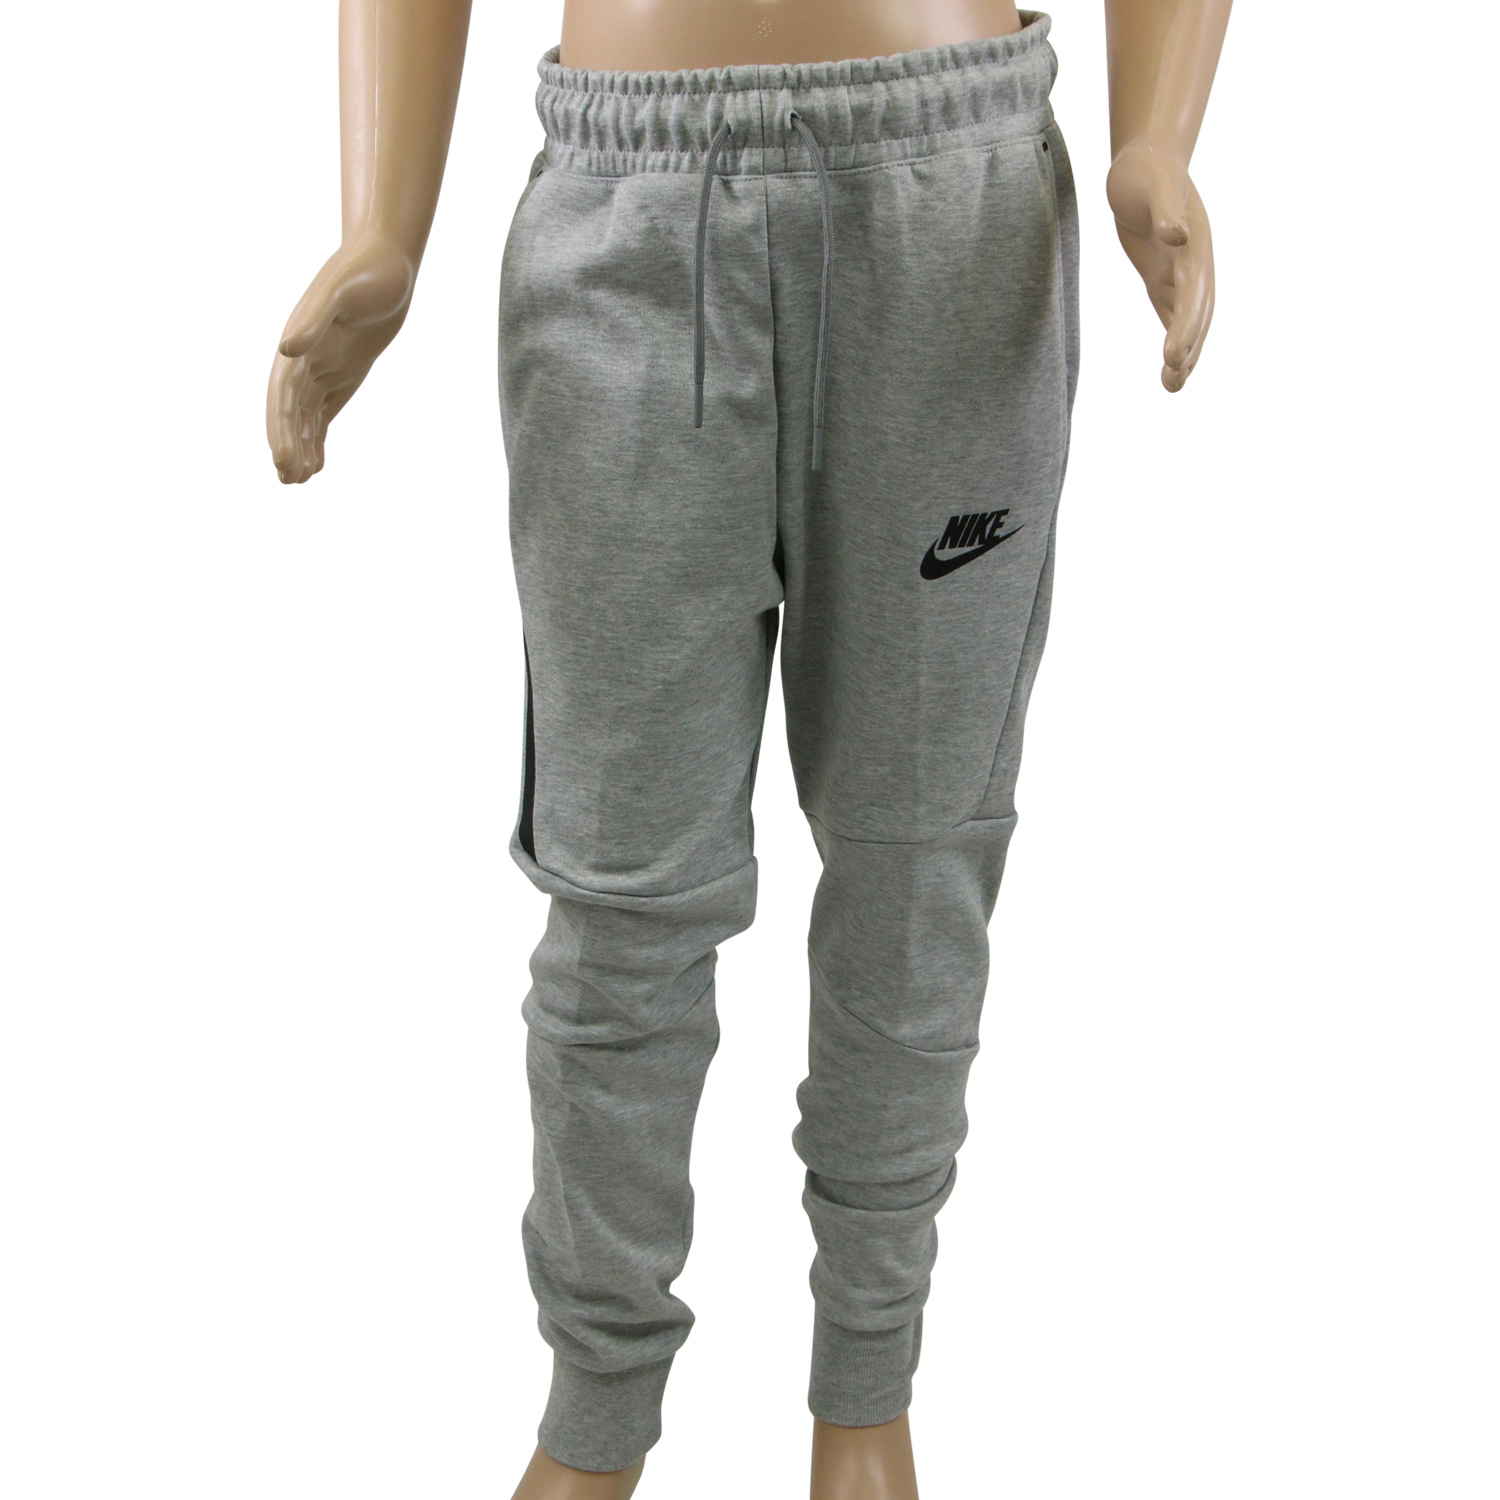 latest fashion official shop promo codes Details zu Nike Sportswear Tech Fleece-Hose Grau Jungen Kinder 804818 064